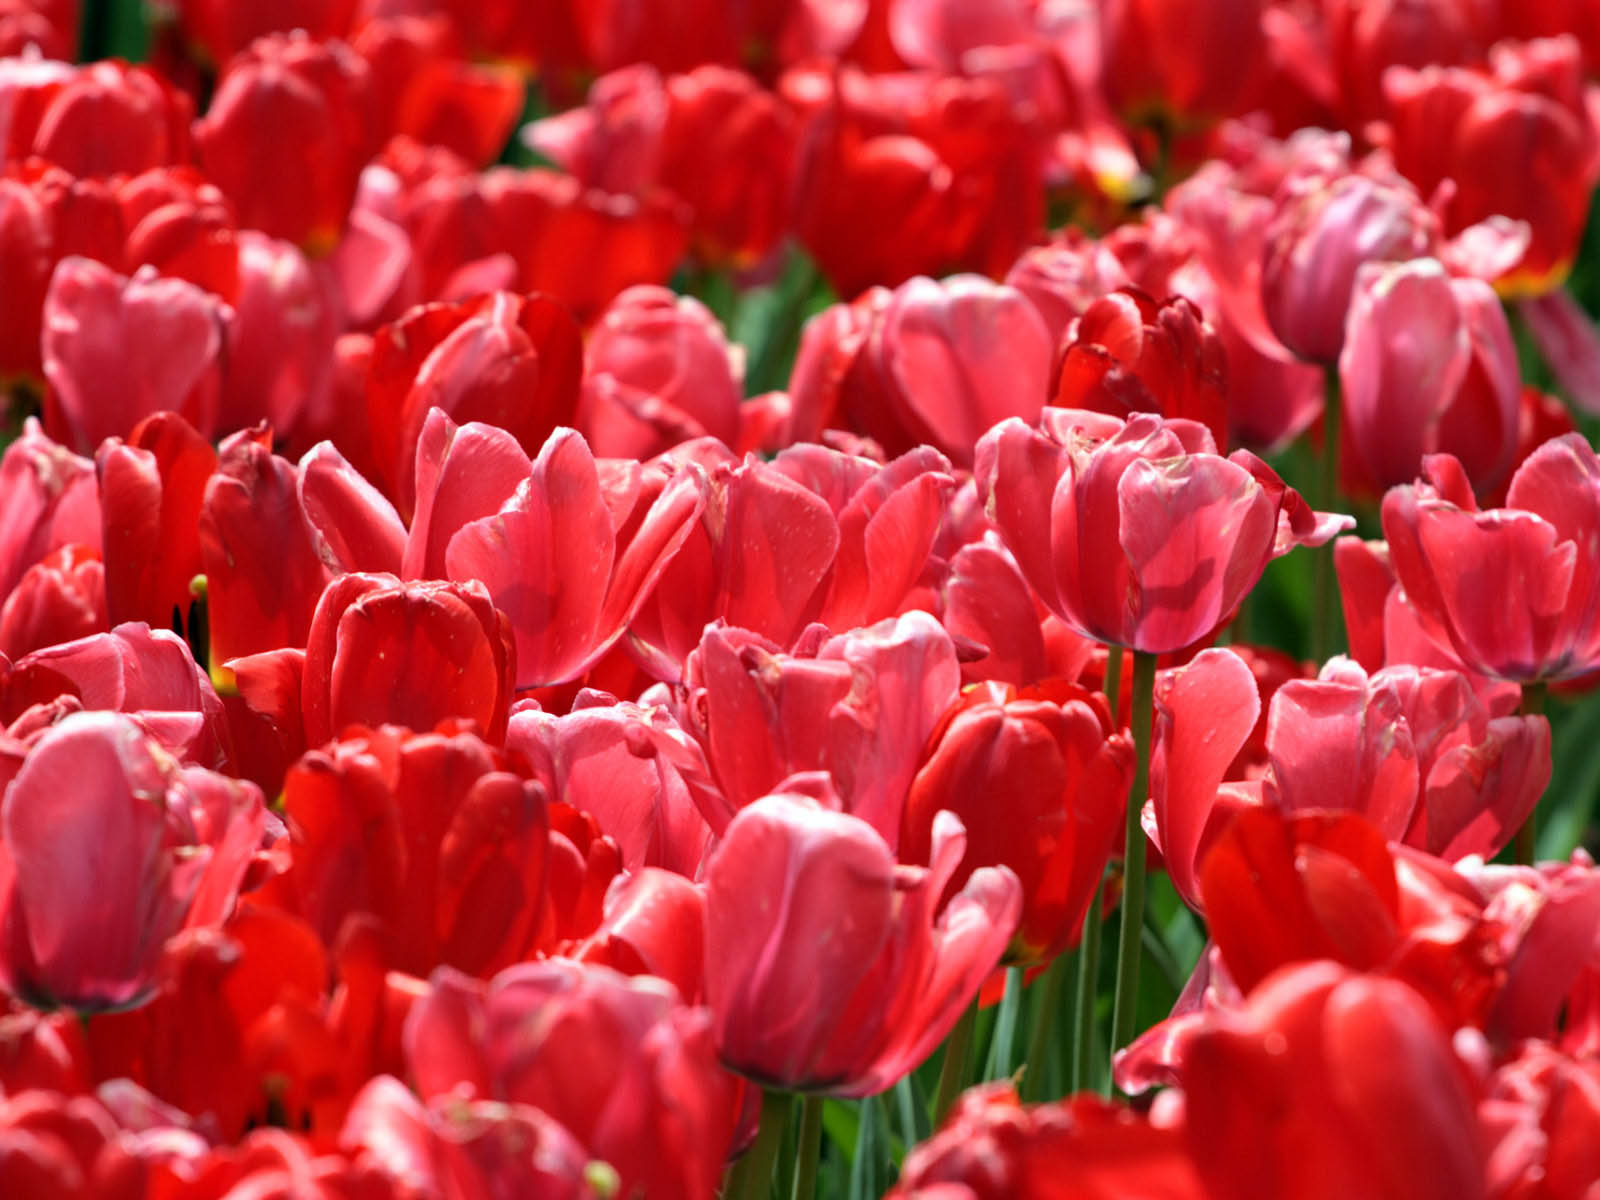 Wallpapers: Red Tulips Wallpapers